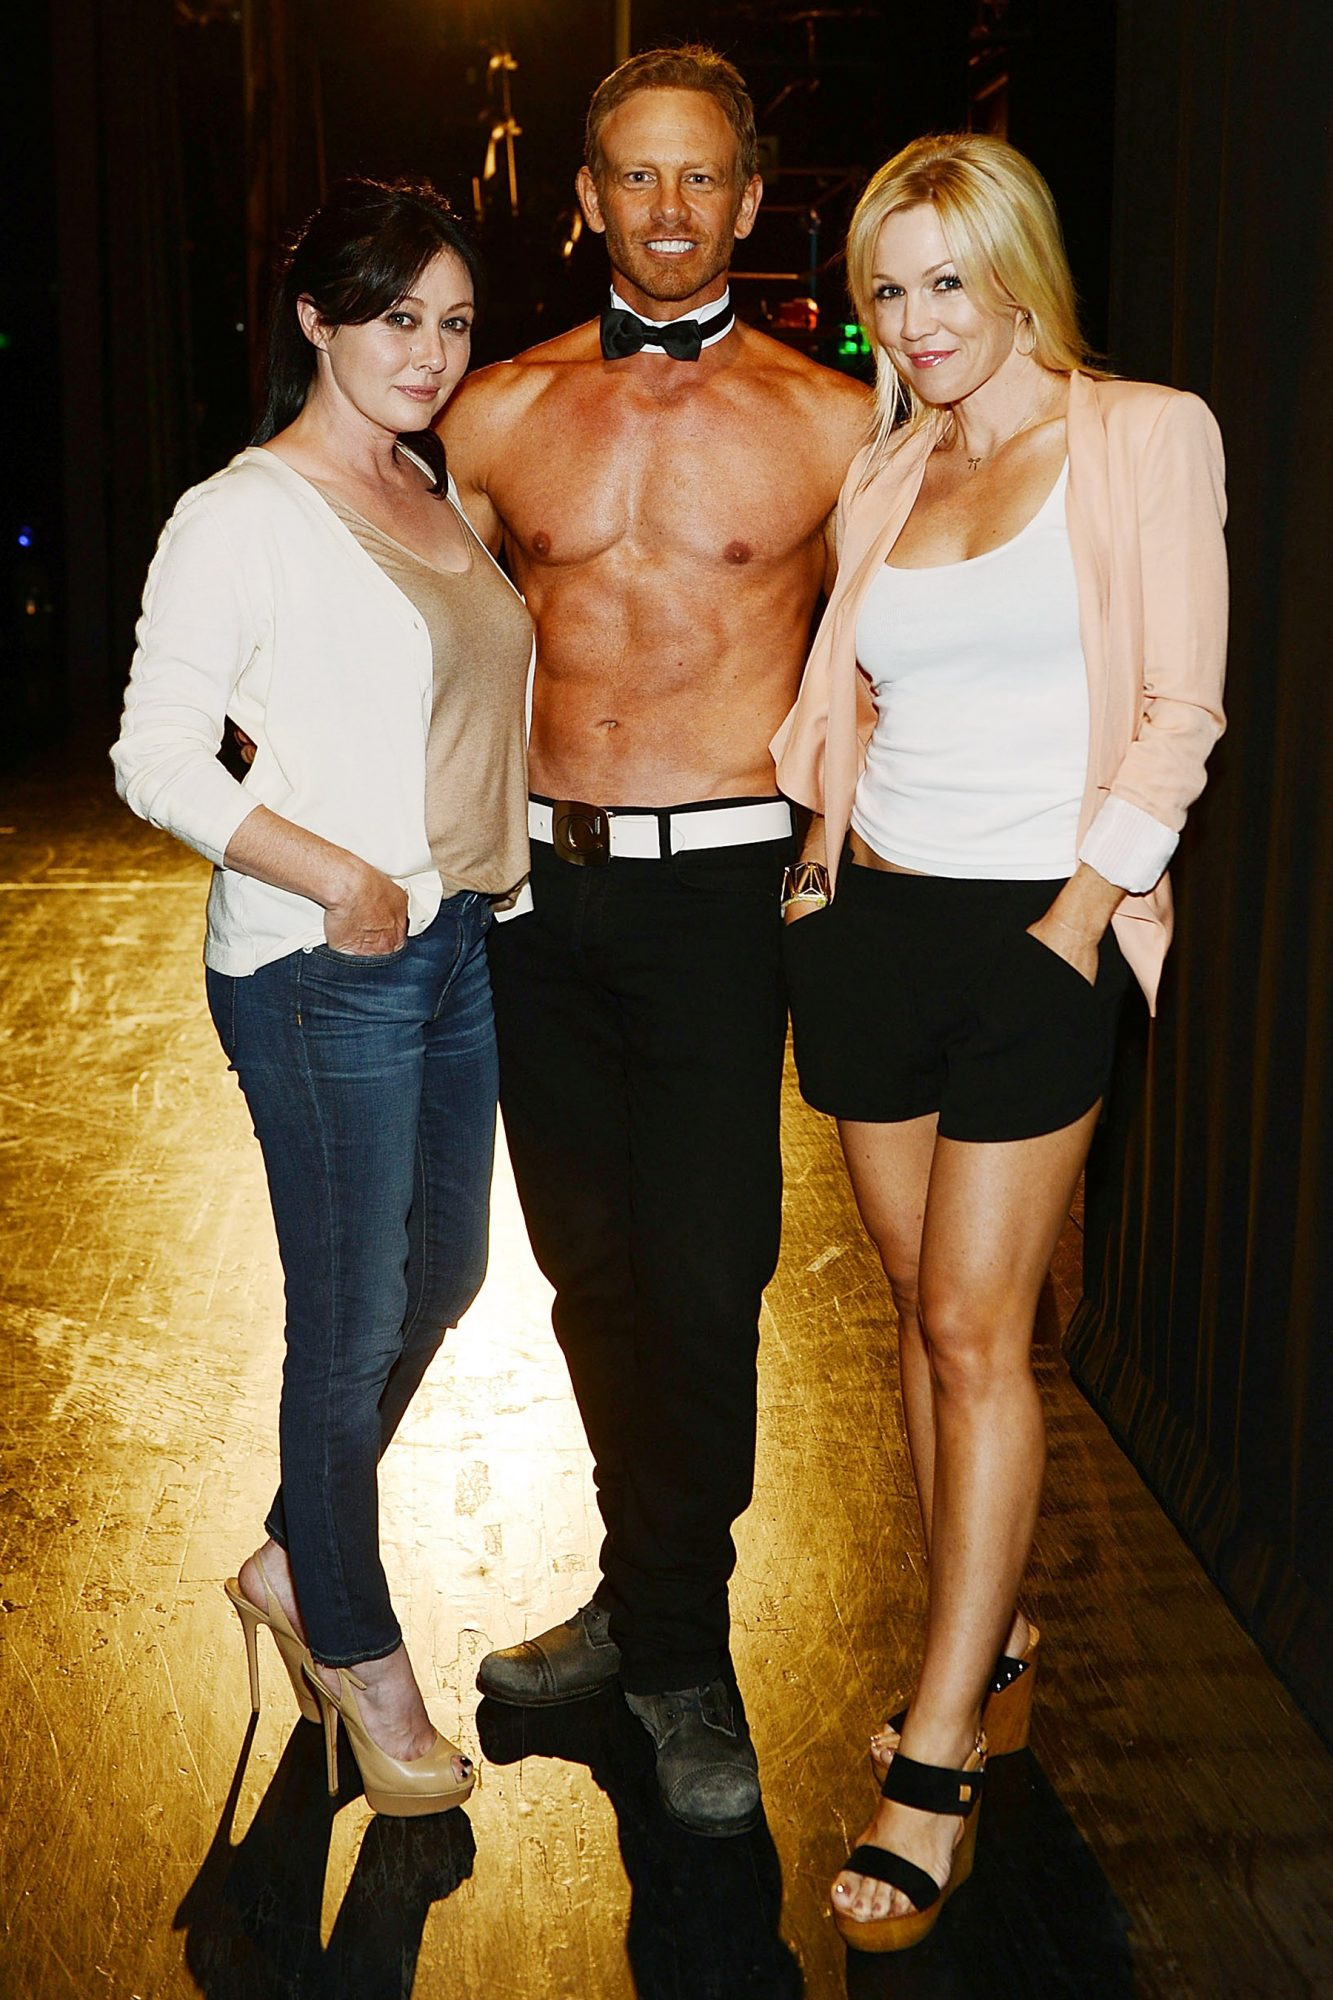 90210 Reunion With Ian, Jennie and Shannen At CHIPPENDALES At Rio All Suite Hotel And Casino